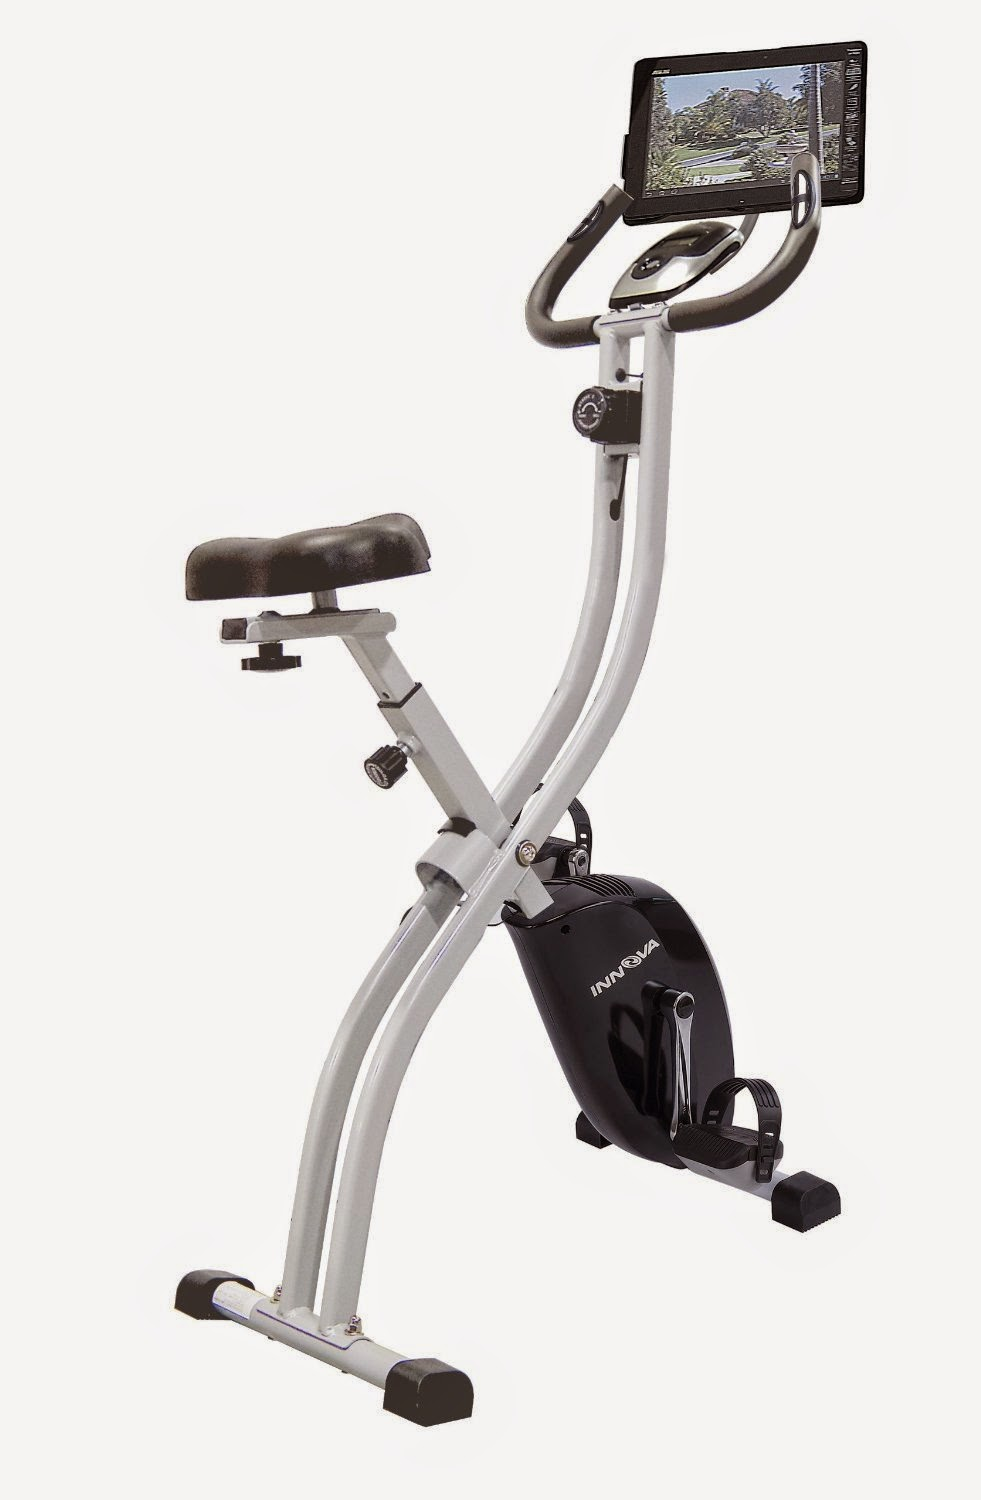 innova fitness xb350 folding upright exercise bike review 8 levels of magnetic resistance